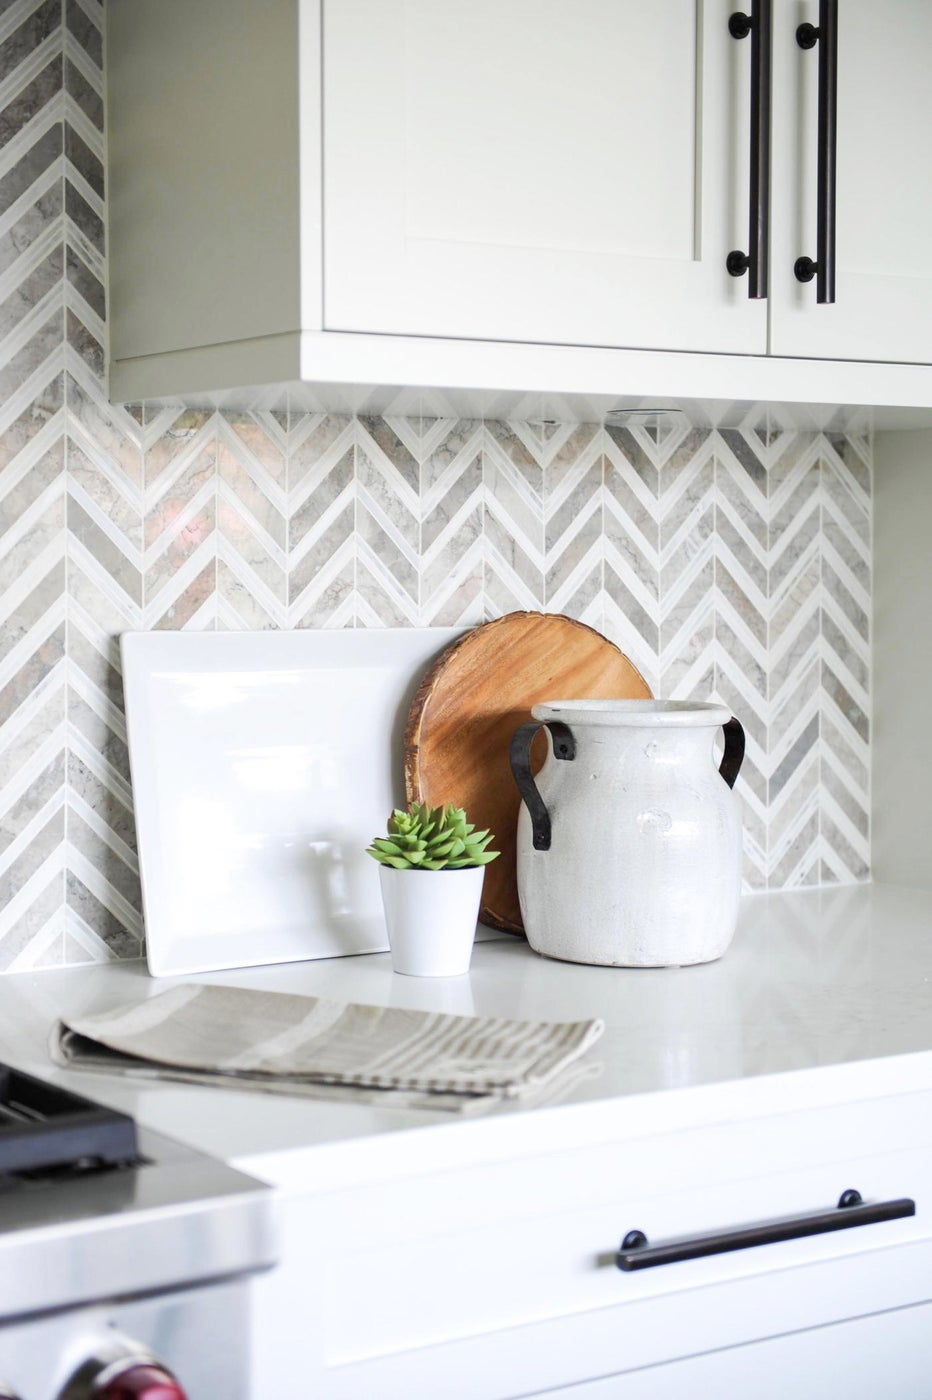 Modern kitchen with herringbone backsplash